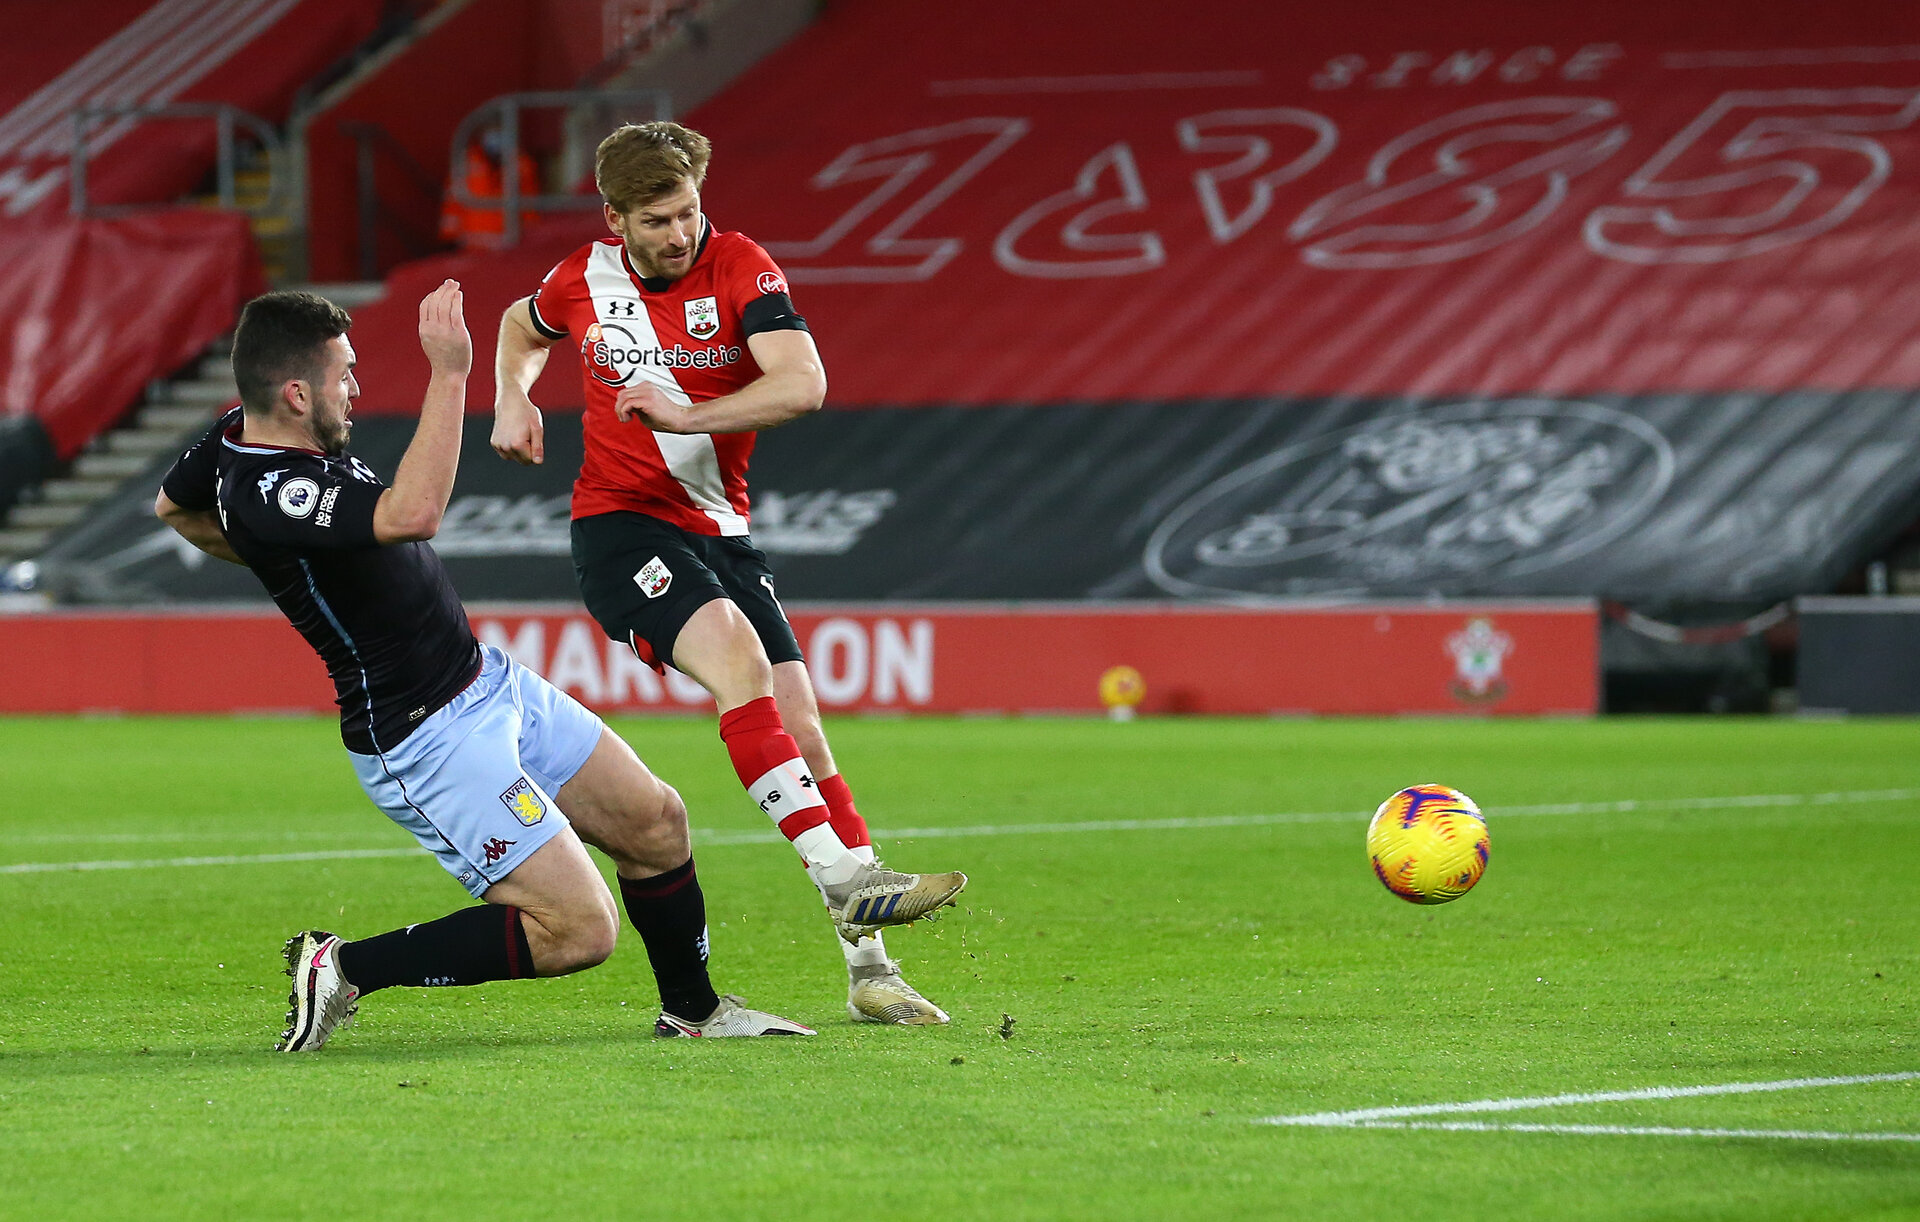 SOUTHAMPTON, ENGLAND - JANUARY 30: Stuart Armstrong of Southampton shoots at goal during the Premier League match between Southampton and Aston Villa at St Mary's Stadium on January 30, 2021 in Southampton, England. Sporting stadiums around the UK remain under strict restrictions due to the Coronavirus Pandemic as Government social distancing laws prohibit fans inside venues resulting in games being played behind closed doors. (Photo by Matt Watson/Southampton FC via Getty Images)